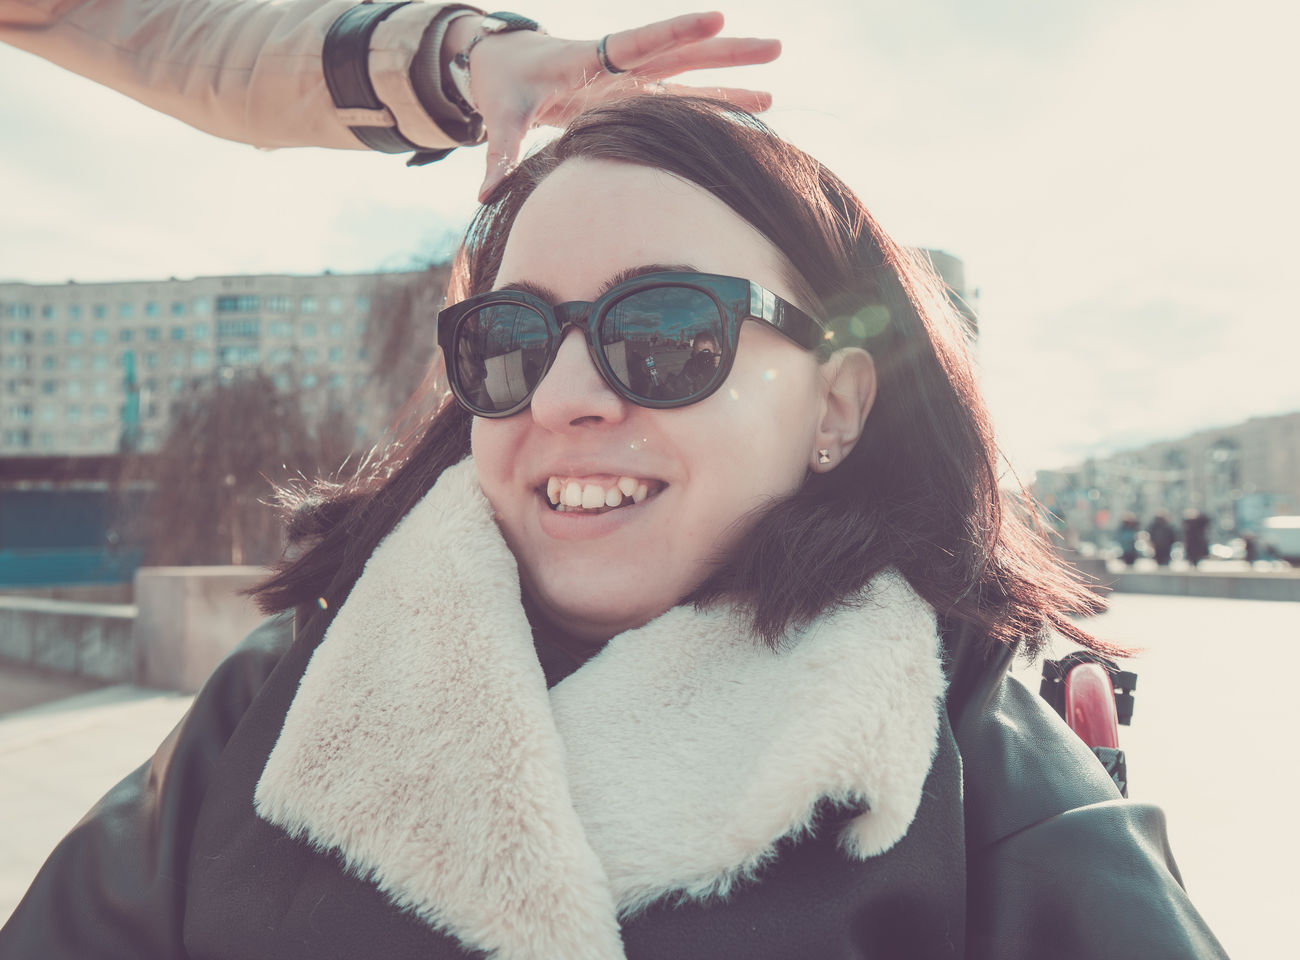 Beautiful Woman City Day Focus On Foreground Fur Fur Coat Headshot Leisure Activity Lifestyles Outdoors Portrait Real People Sky Smiling Sunglasses Two People Warm Clothing Young Adult Young Women